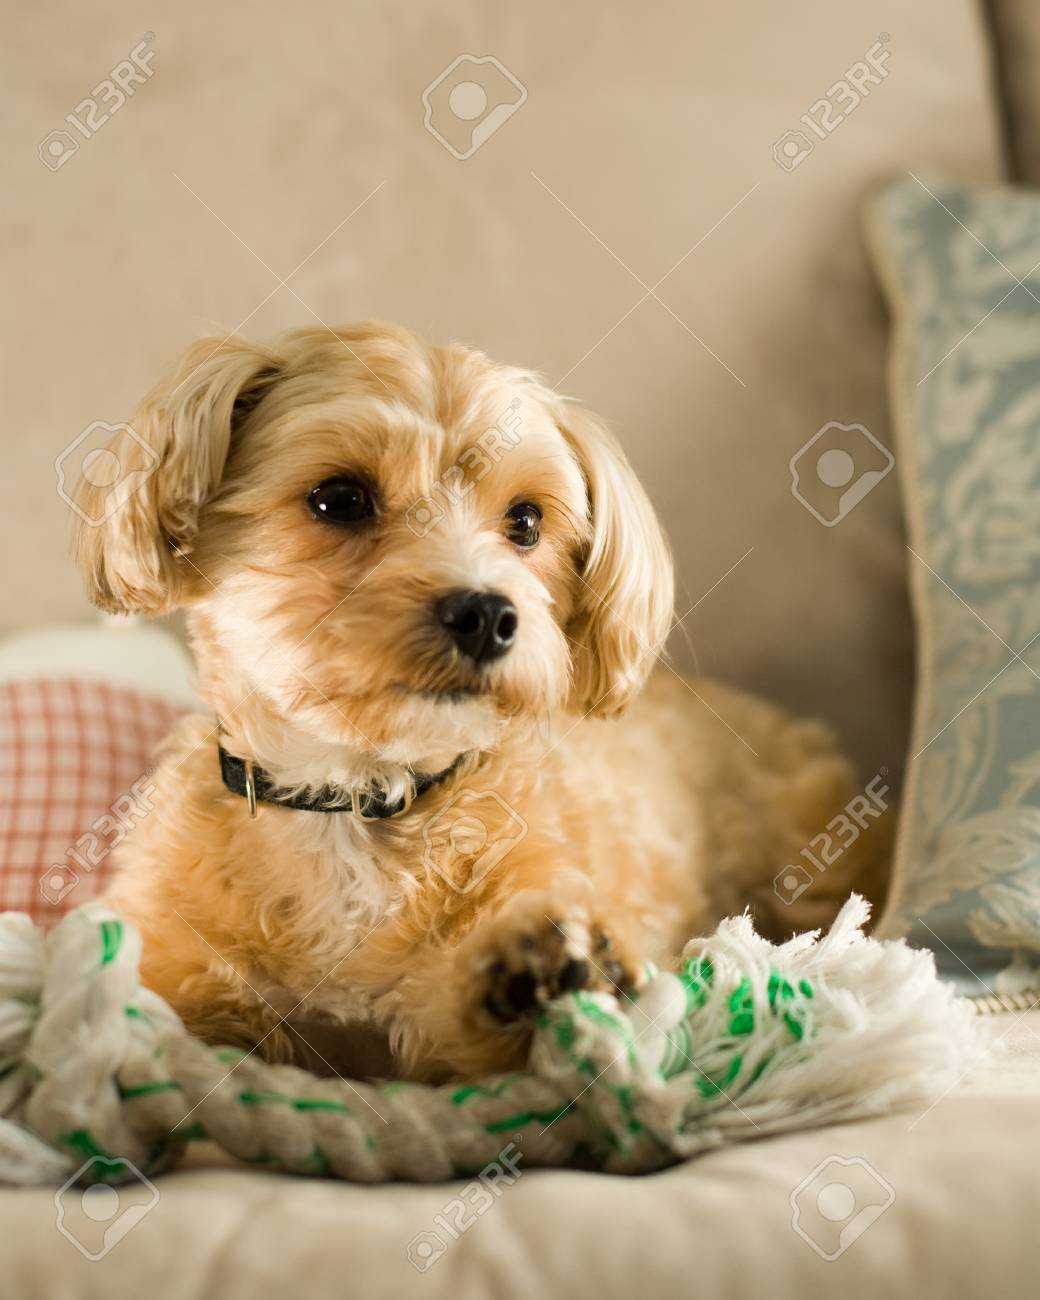 Yorkie And Shitzu Mixed Puppy On Sofa Stock Photo Picture And Royalty Free Image Image 1656651